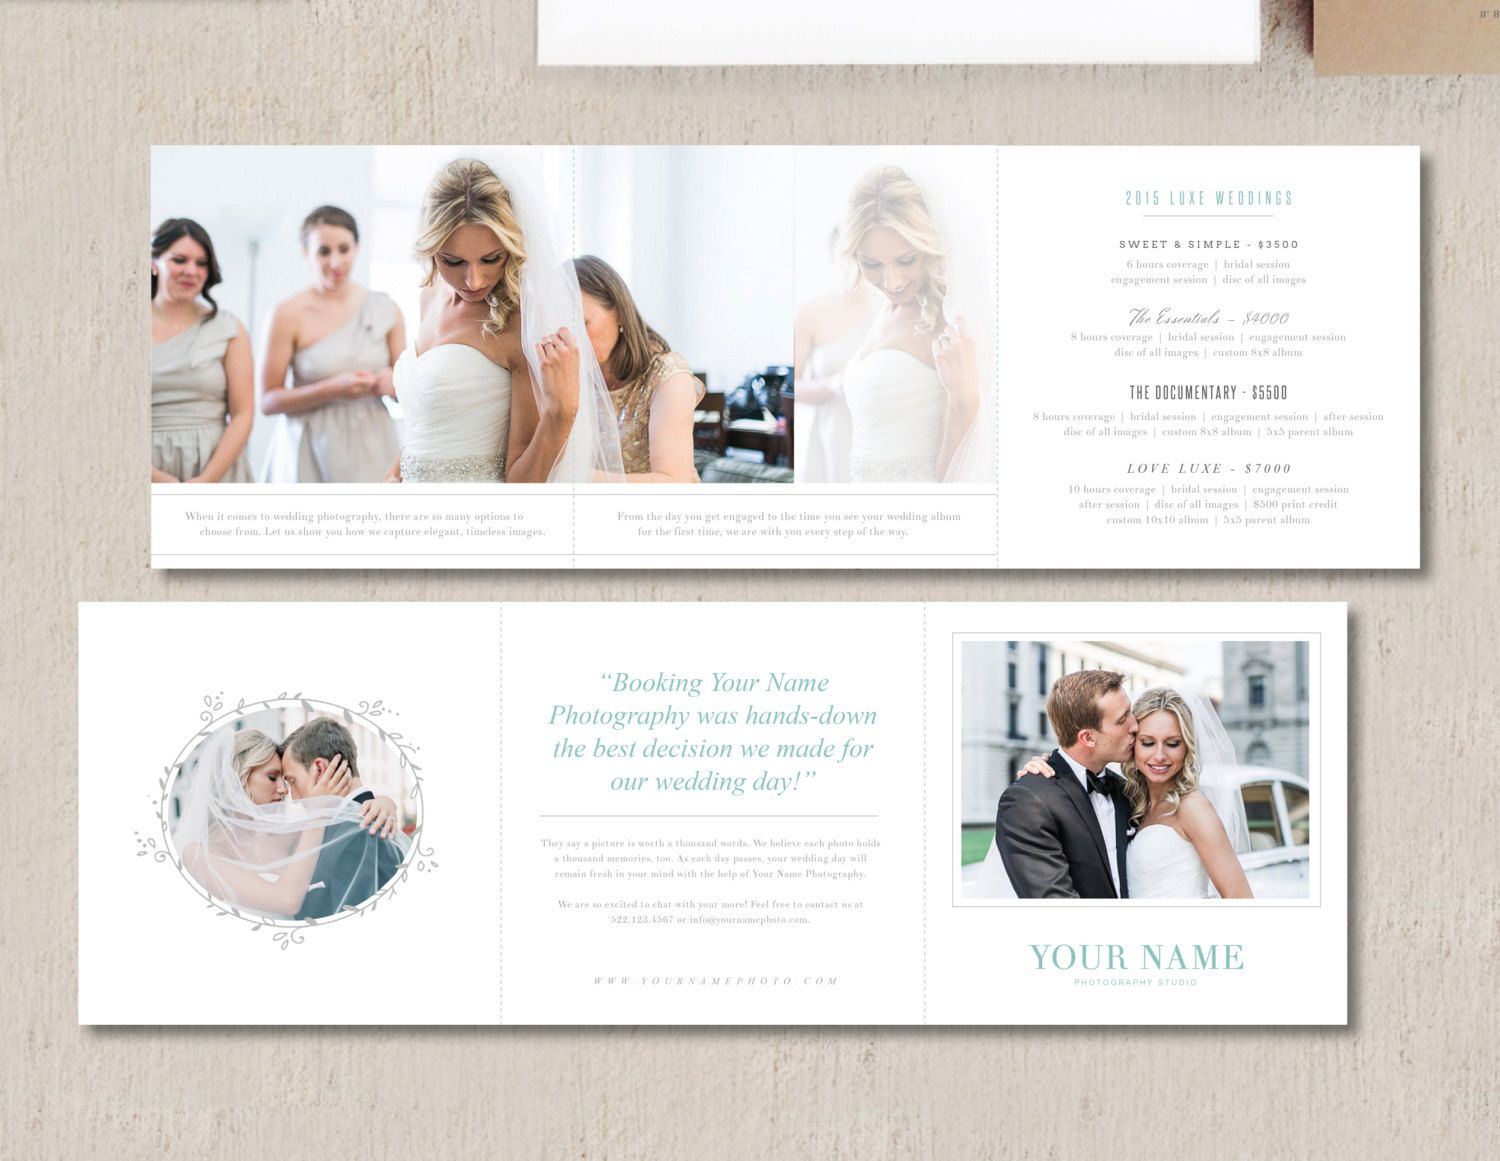 Pricing Guide Trifold Template For Wedding By Designbybittersweet Photography Pricing Template Pricing Guides Templates Photography Price List